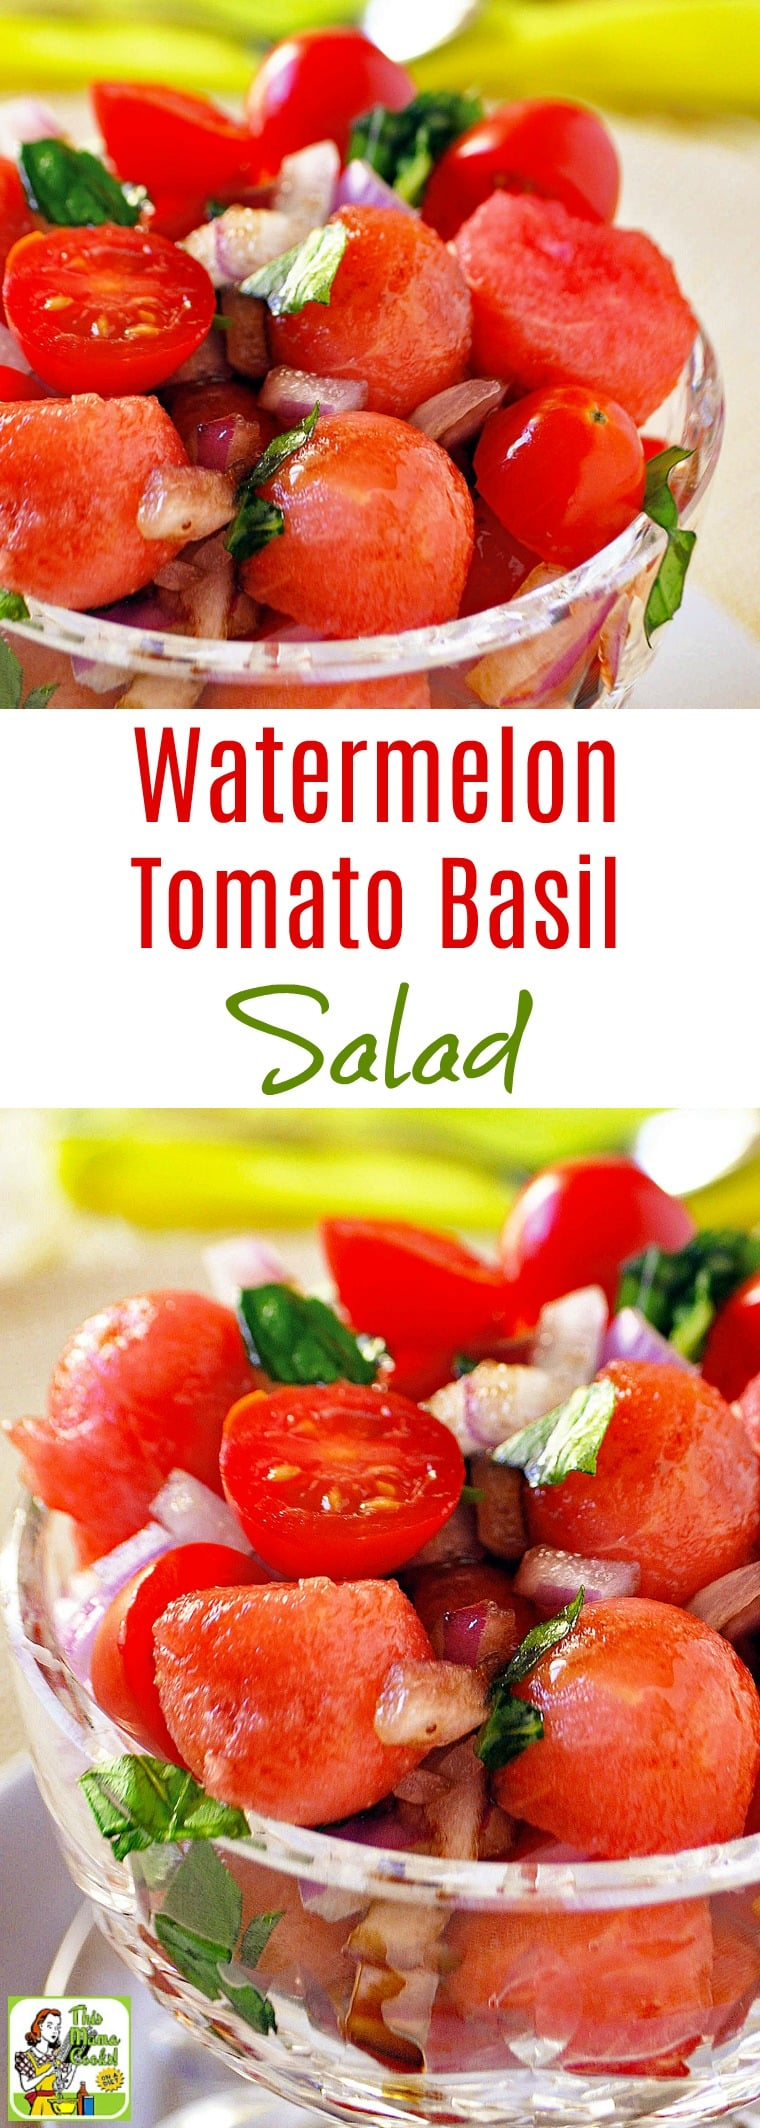 This Easy Watermelon Tomato Basil Salad recipe is ideal for summer cookouts or potlucks. This easy to make watermelon and tomato salad is also vegan, vegetarian, dairy-free, and can be made in 20 minutes. #recipes #easy #recipeoftheday #healthyrecipes #glutenfree #easyrecipes #salad #saladrecipes #watermelon #watermelonrecipes #tomatoes #vegetarian #vegan #veganrecipes